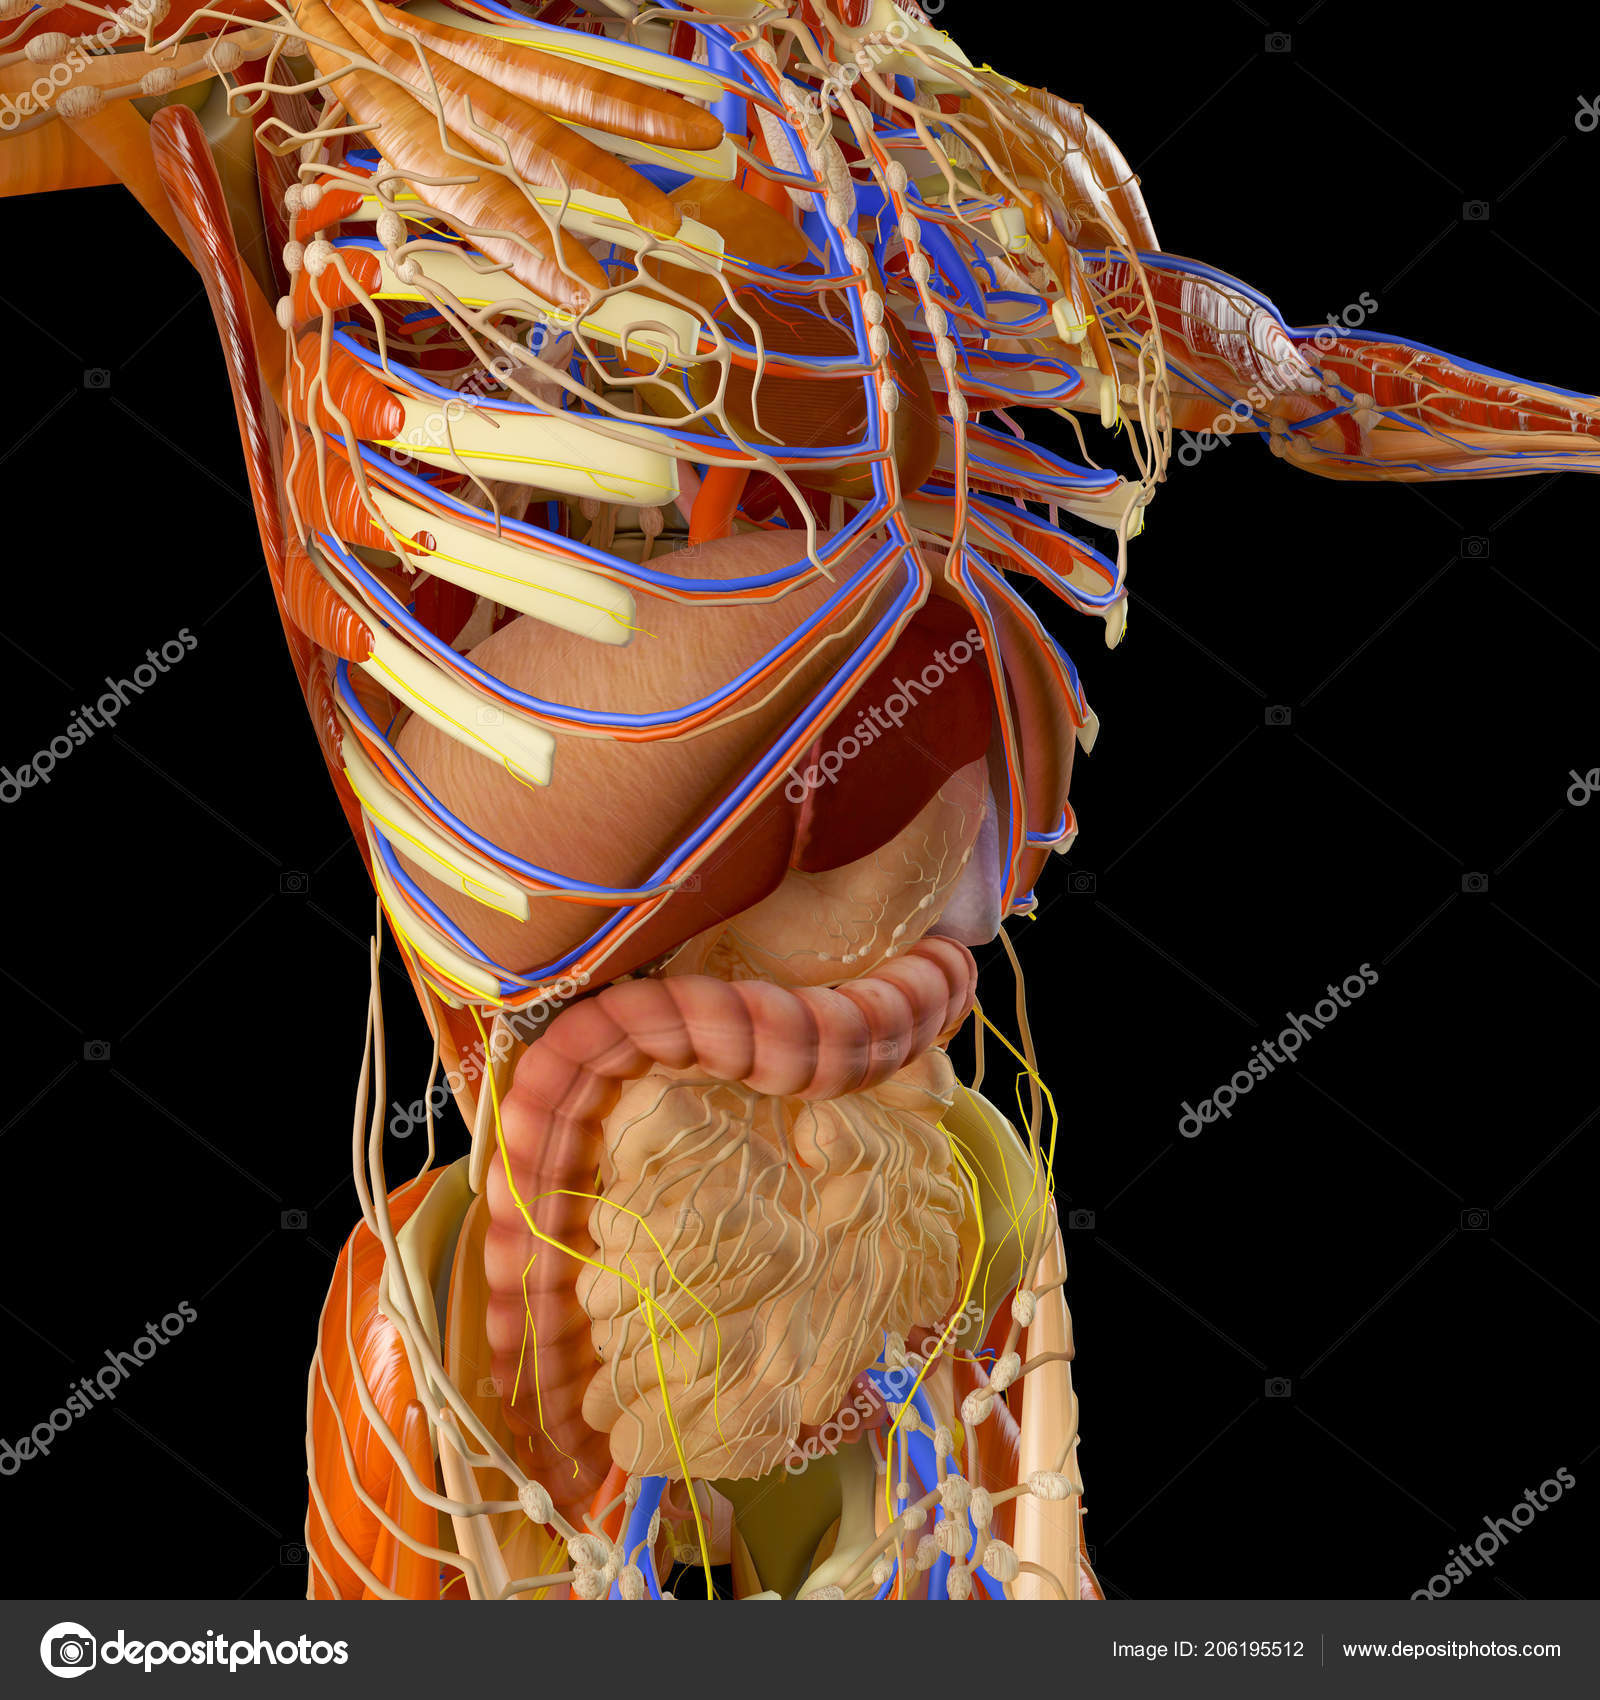 Human Body Muscular System Person Digestive System Anatomy Internal